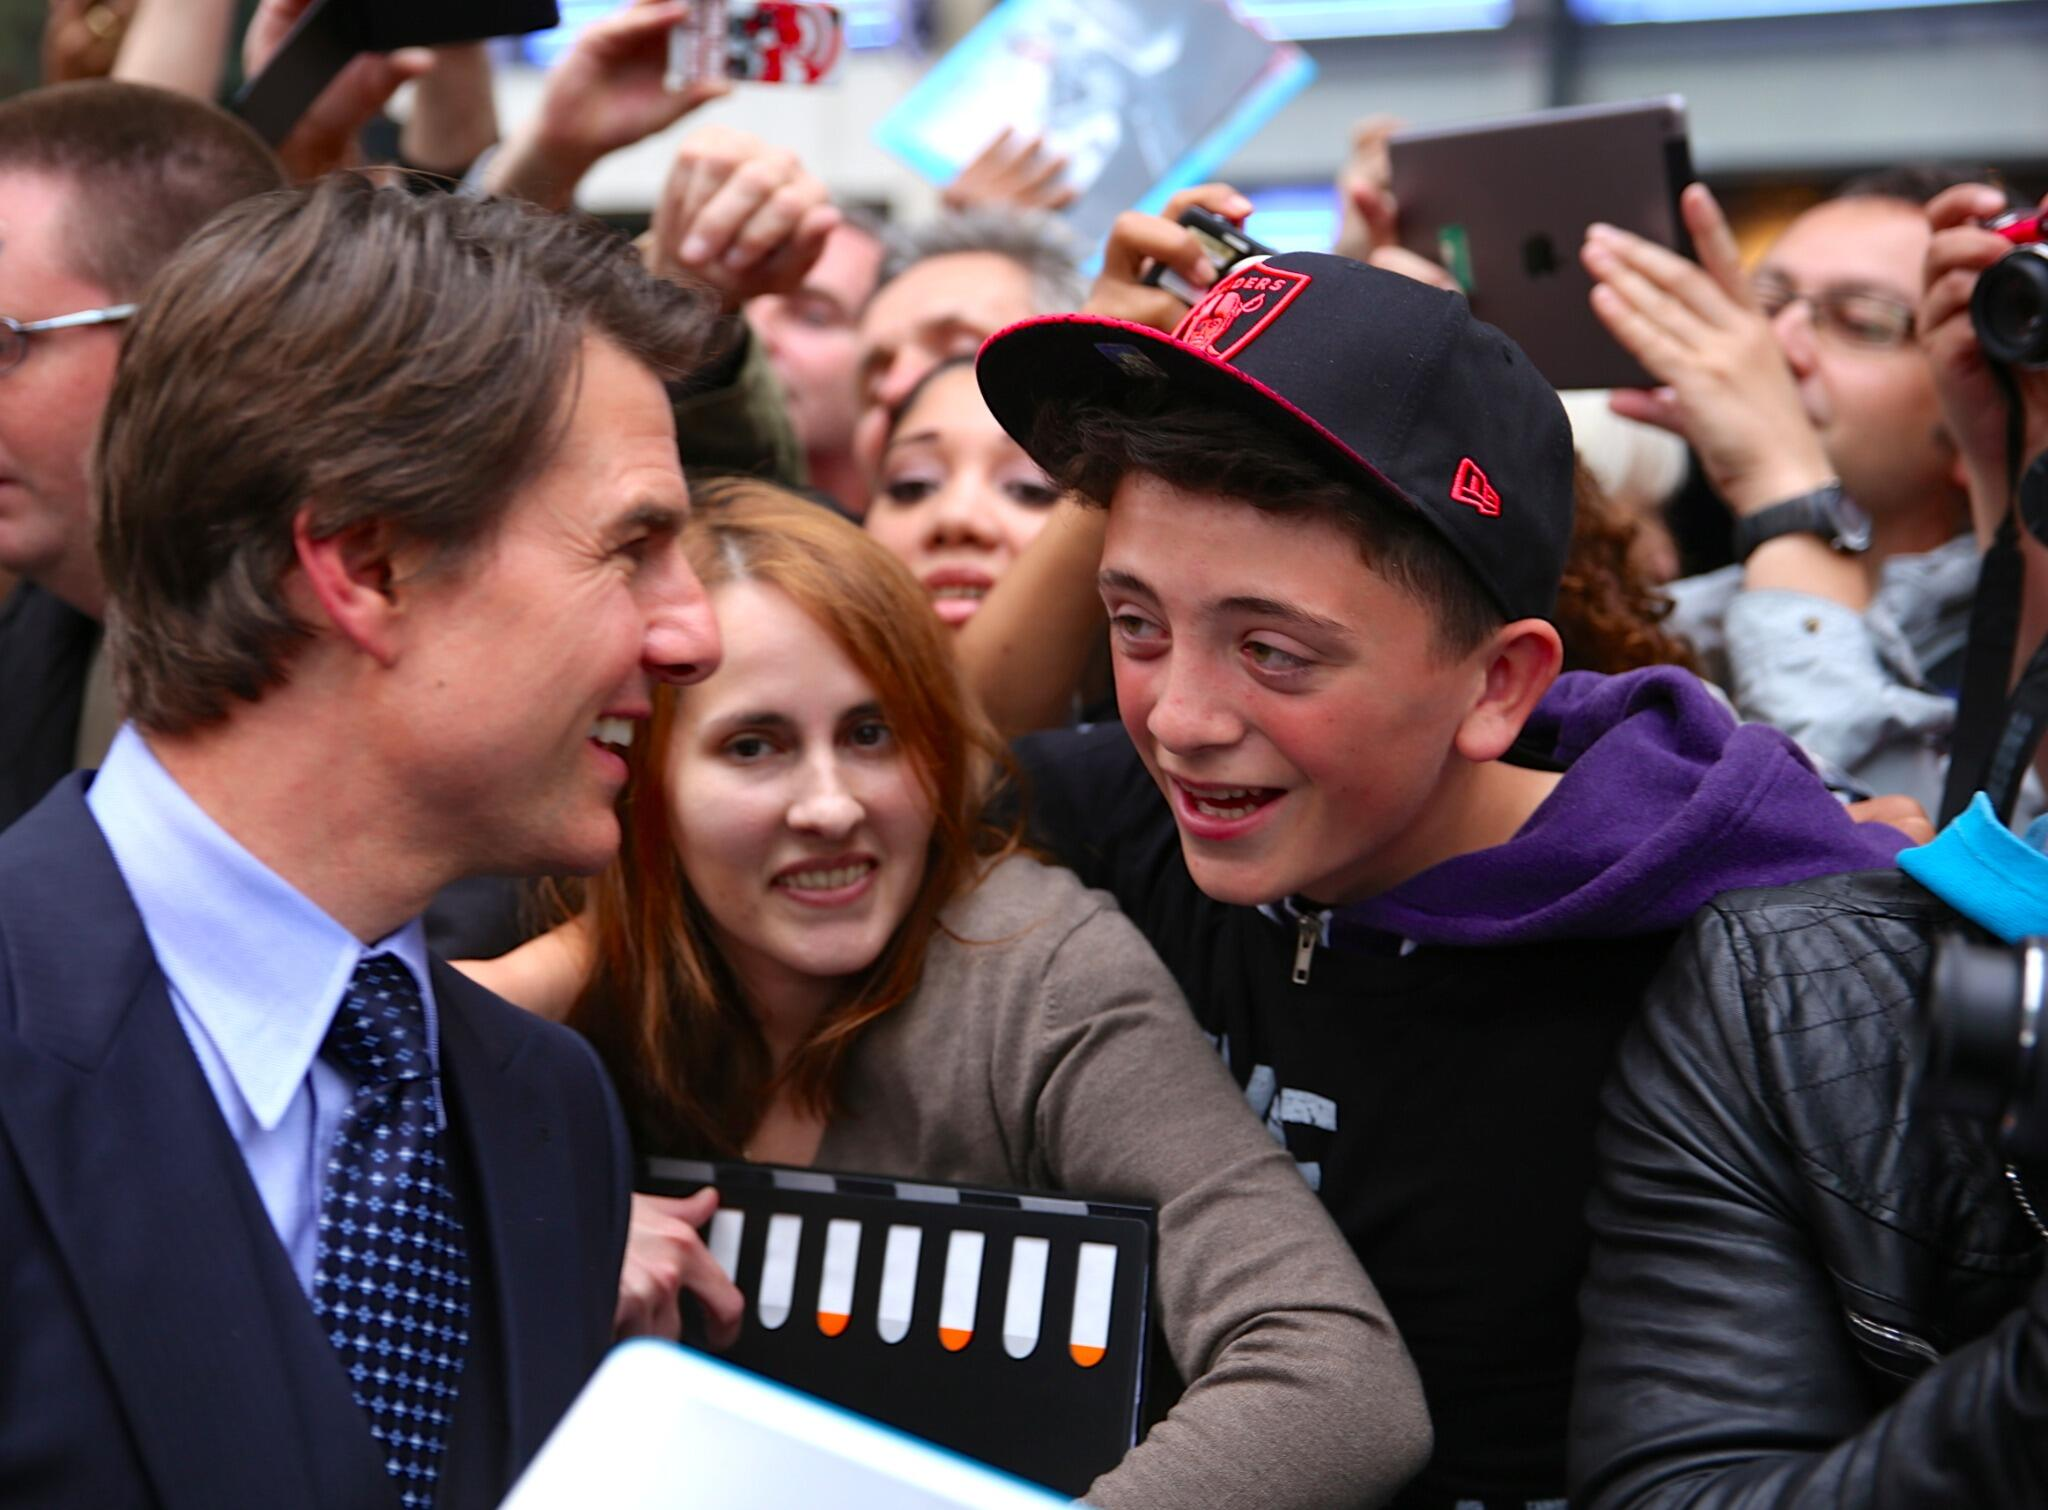 Twitter / TomCruise: Having fun meeting with fans ...